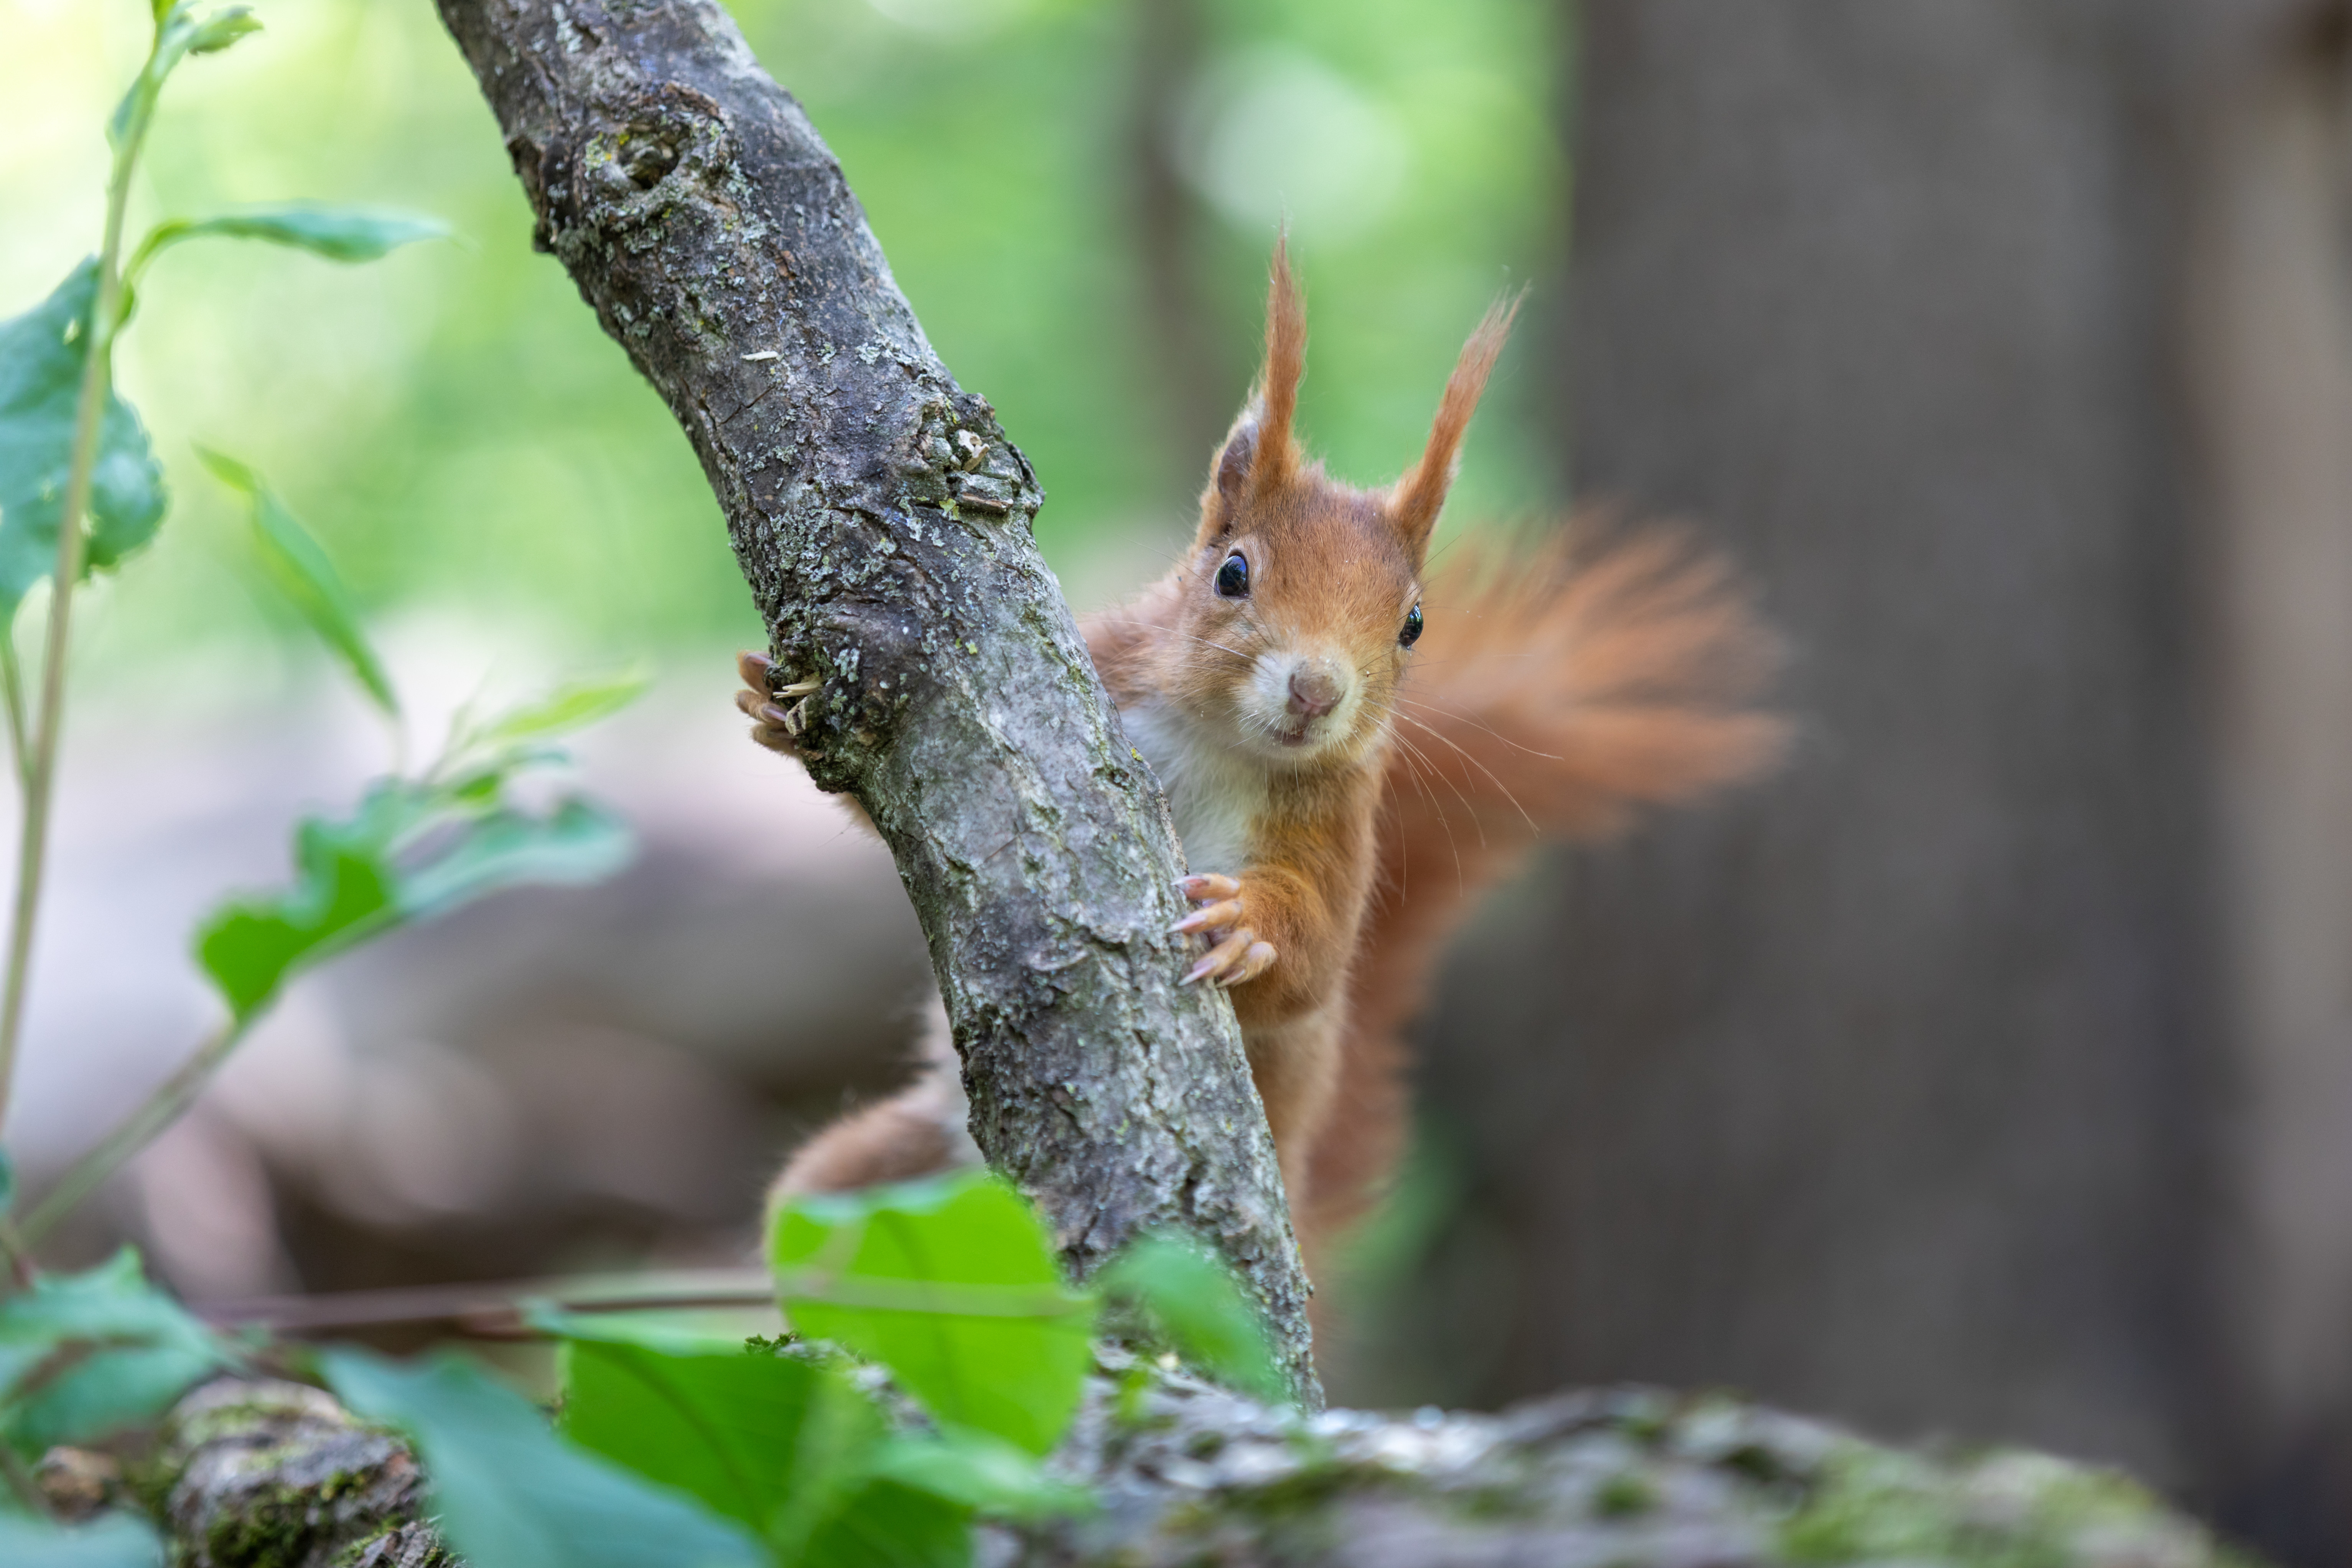 131198 download wallpaper Animals, Squirrel, Rodent, Nice, Sweetheart, Fluffy screensavers and pictures for free